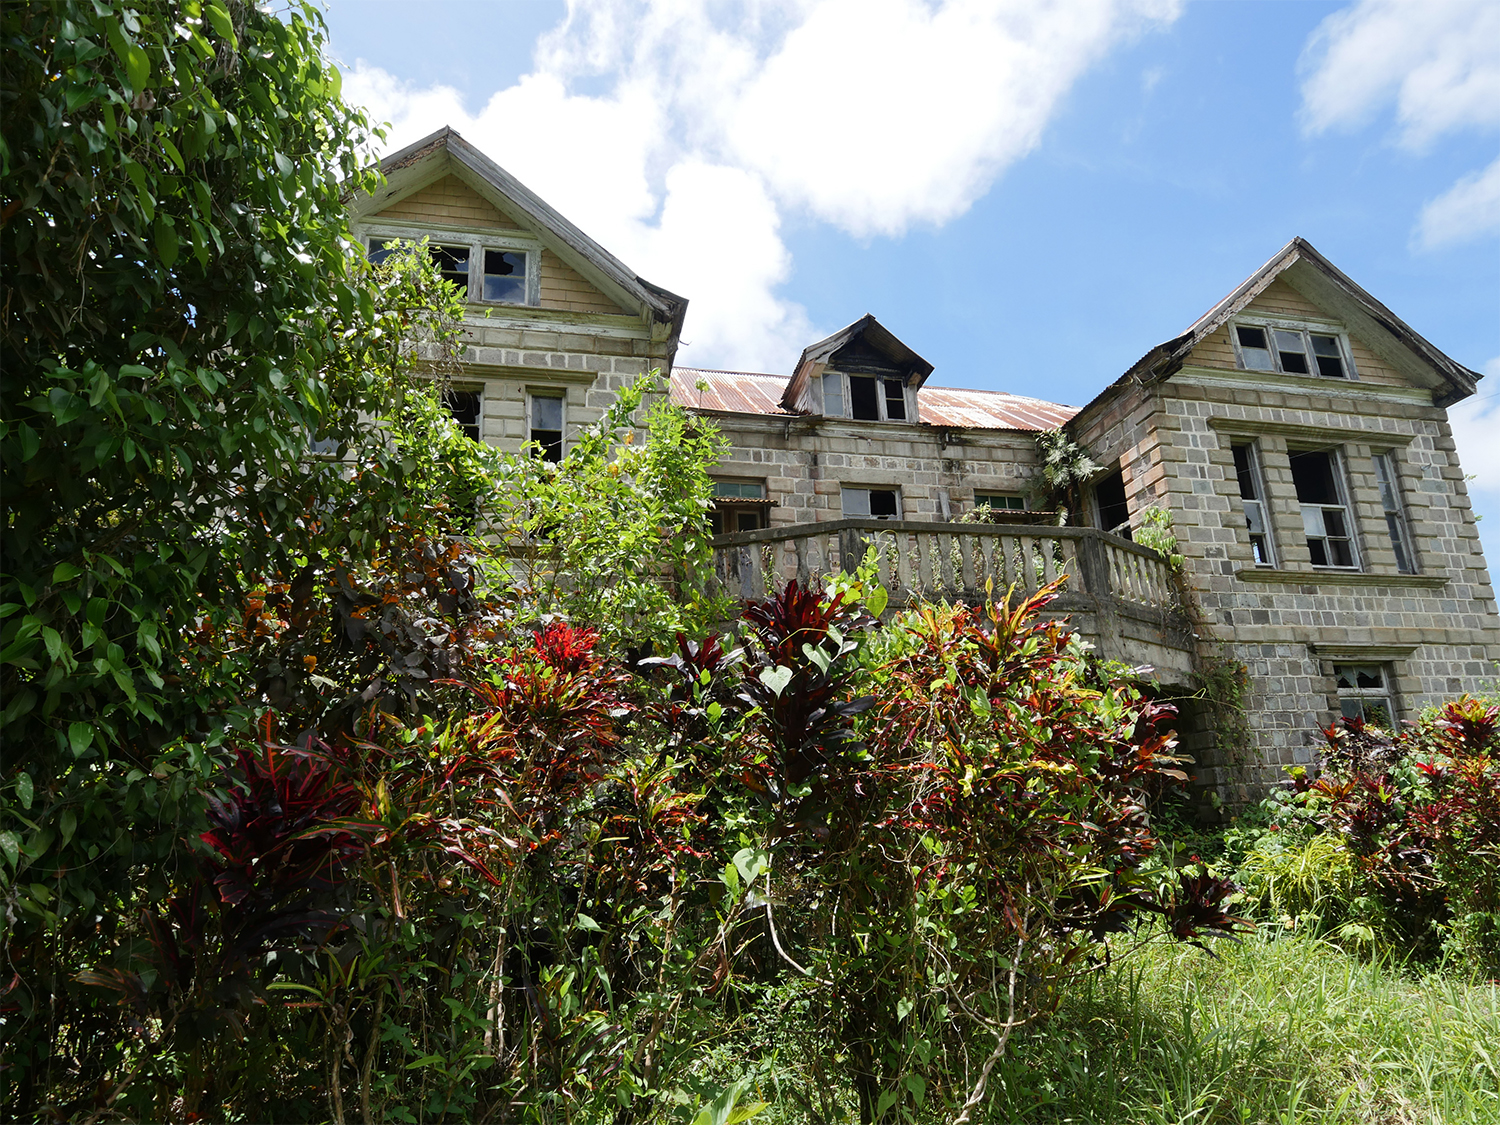 Plantation House - Grenada Chocolate Company